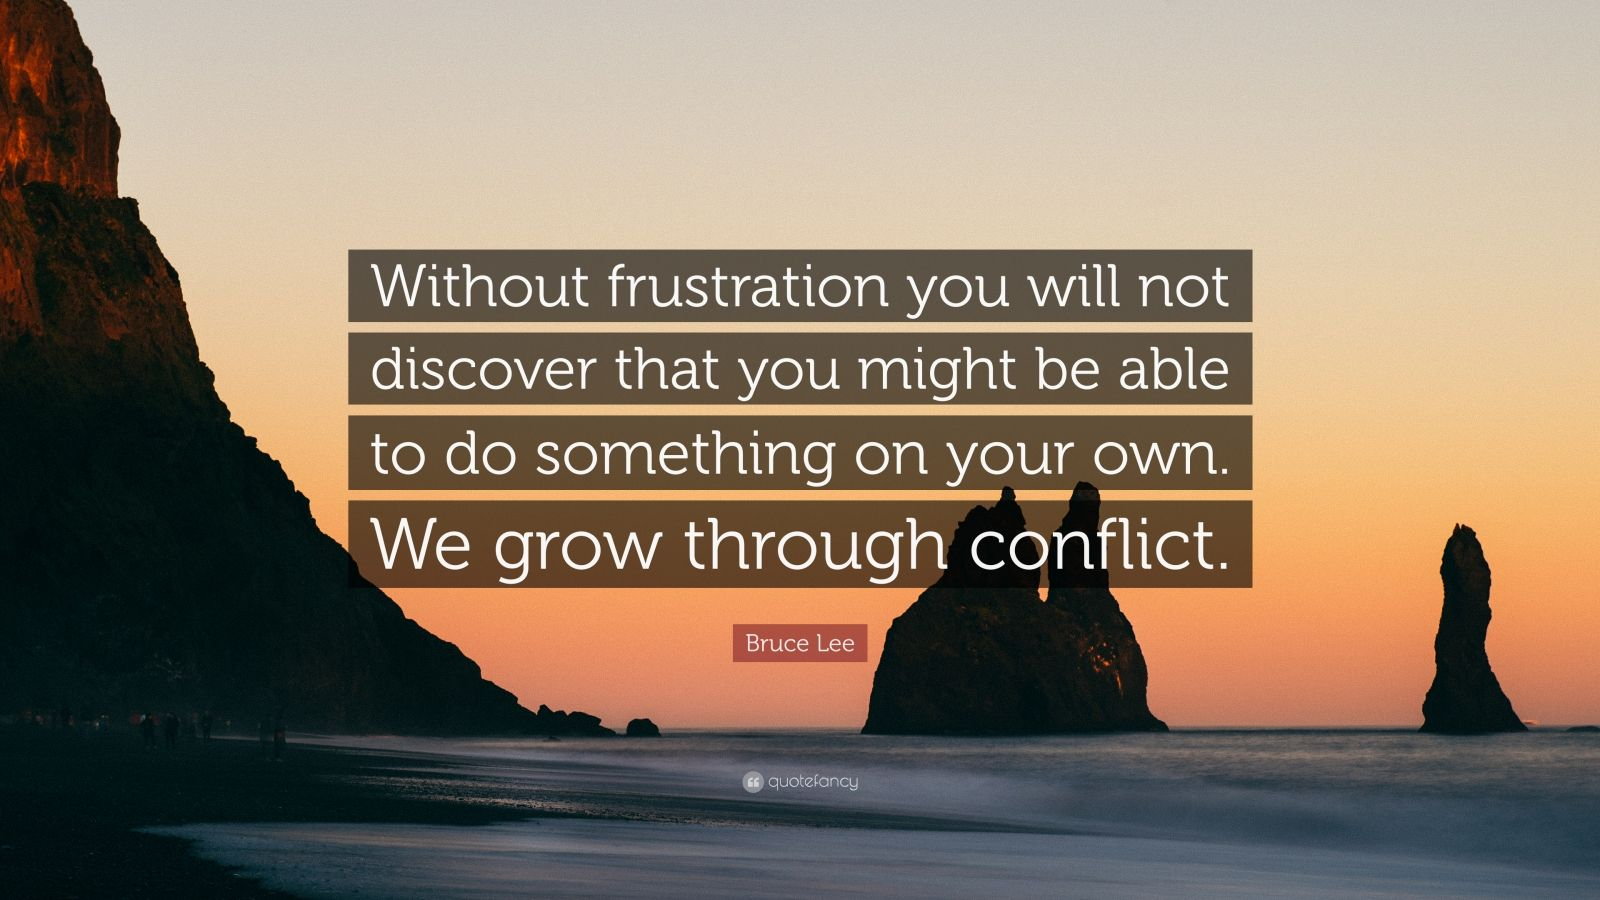 it is through conflict that we grow